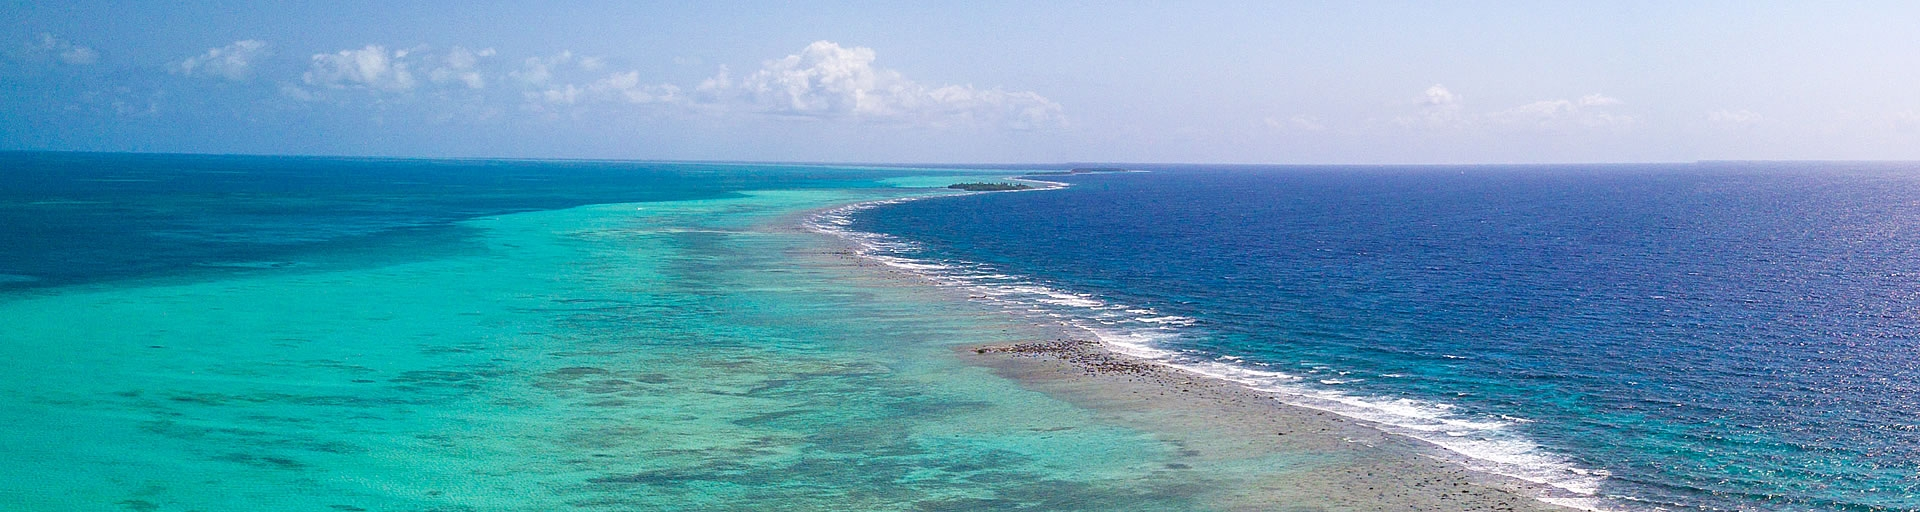 Belize Barrier Reef & Coral Atolls